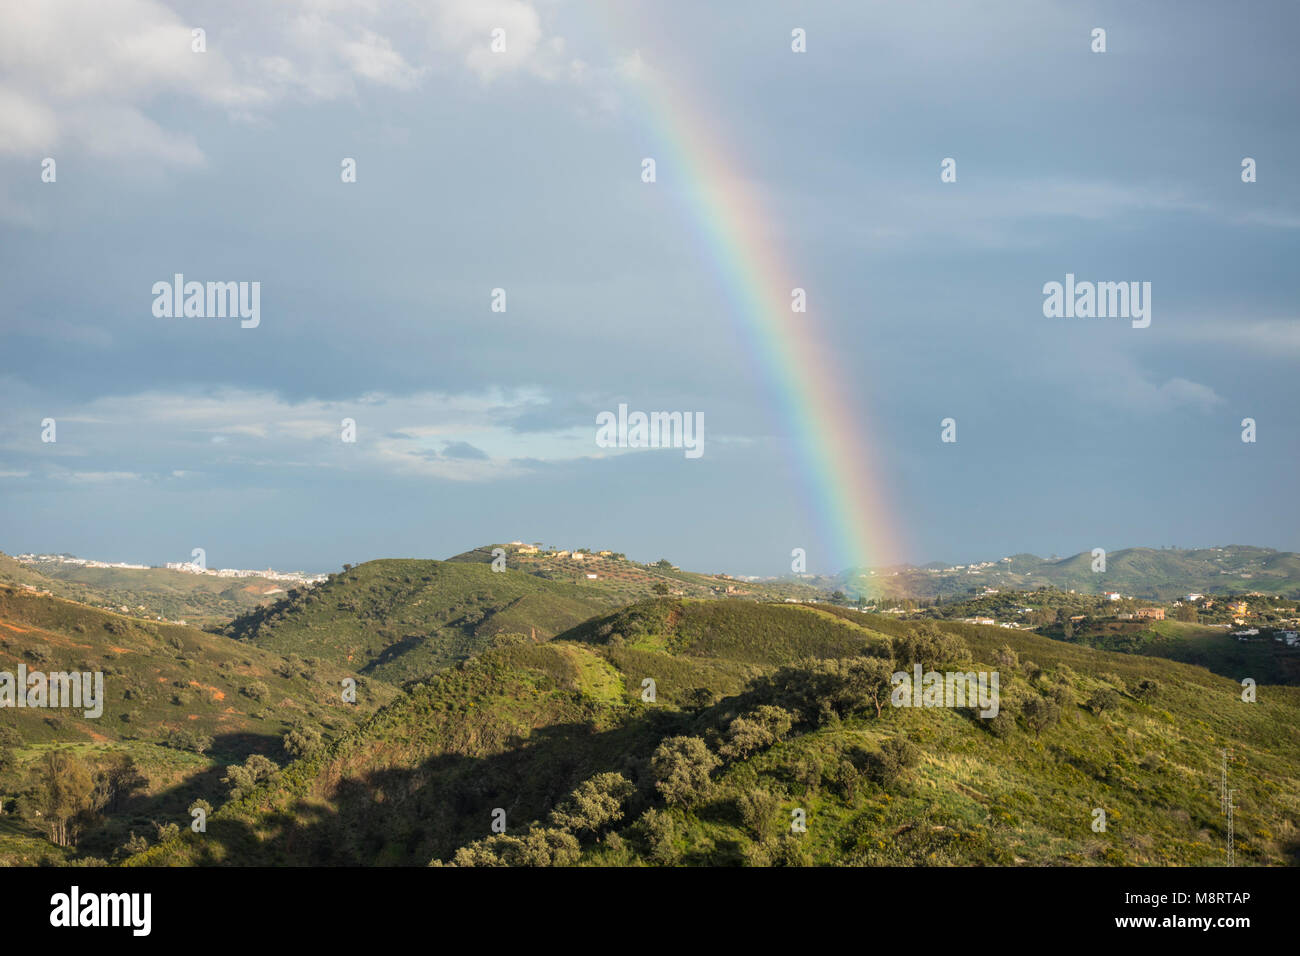 Rainbow over rolling hills of Andalusian Countryside, Malaga, Costa del Sol, Spain. - Stock Image